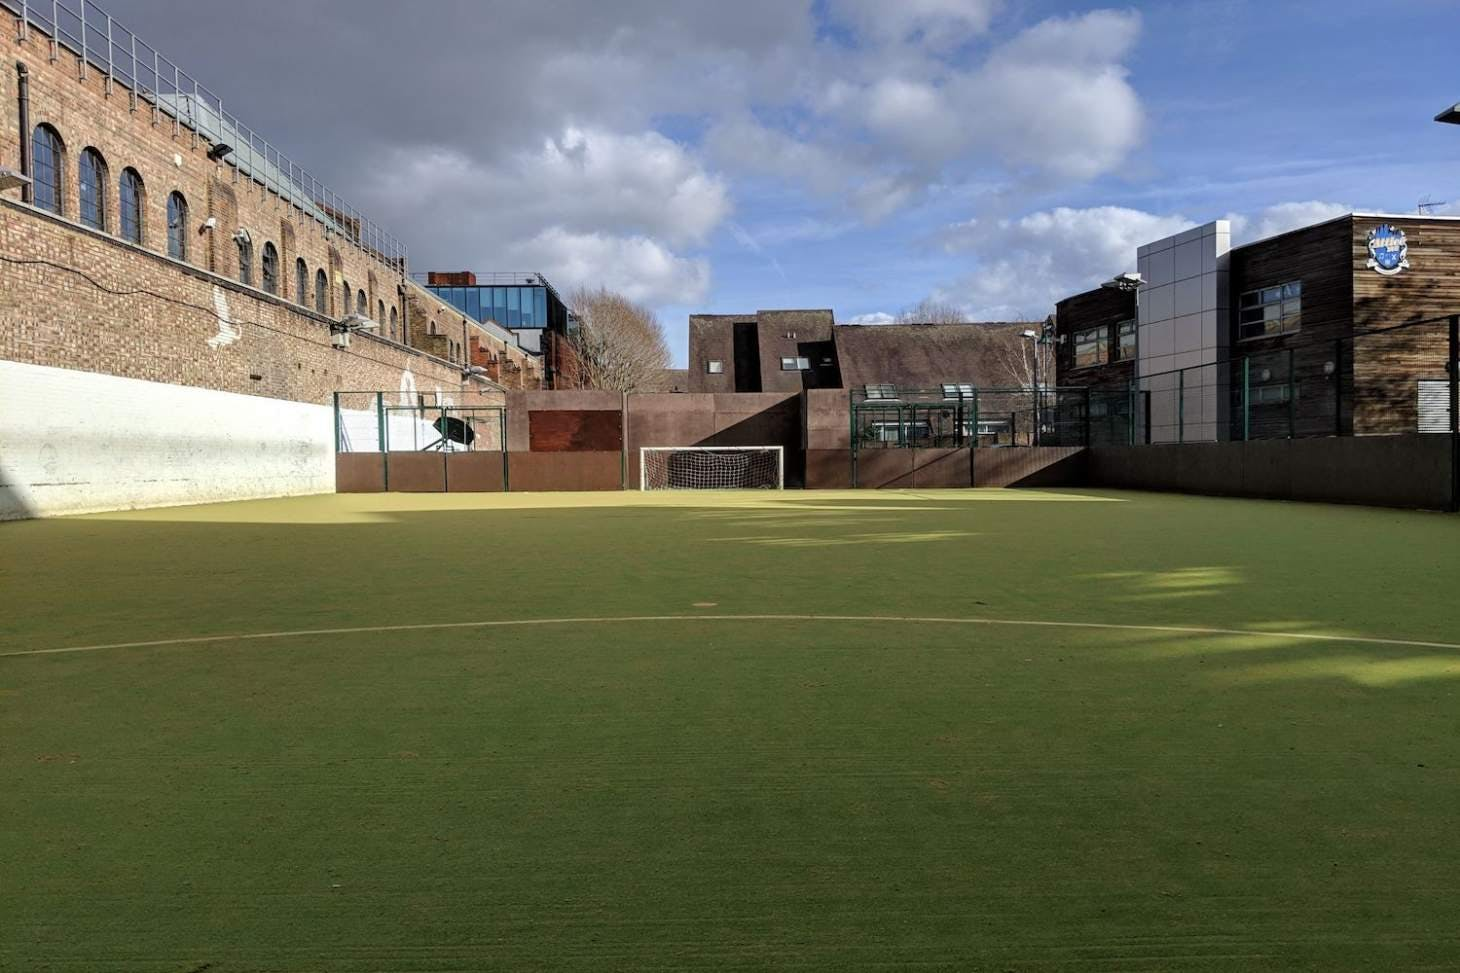 Attlee Centre - 5ASIDE FC 5 a side | Astroturf football pitch